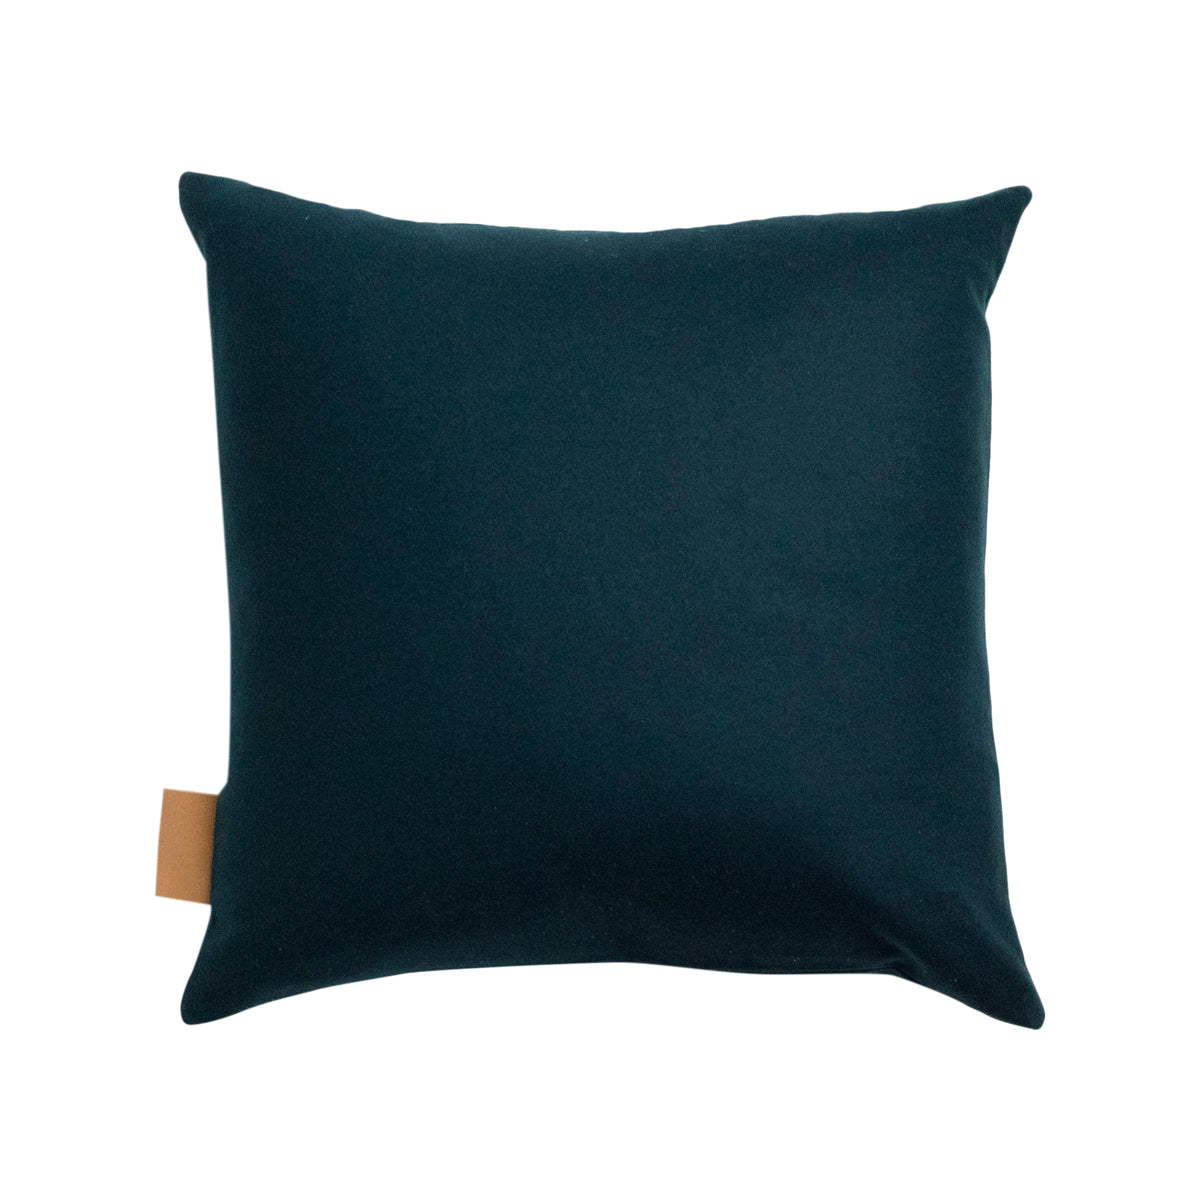 Frankie Square Cushion Cover - Forest Green